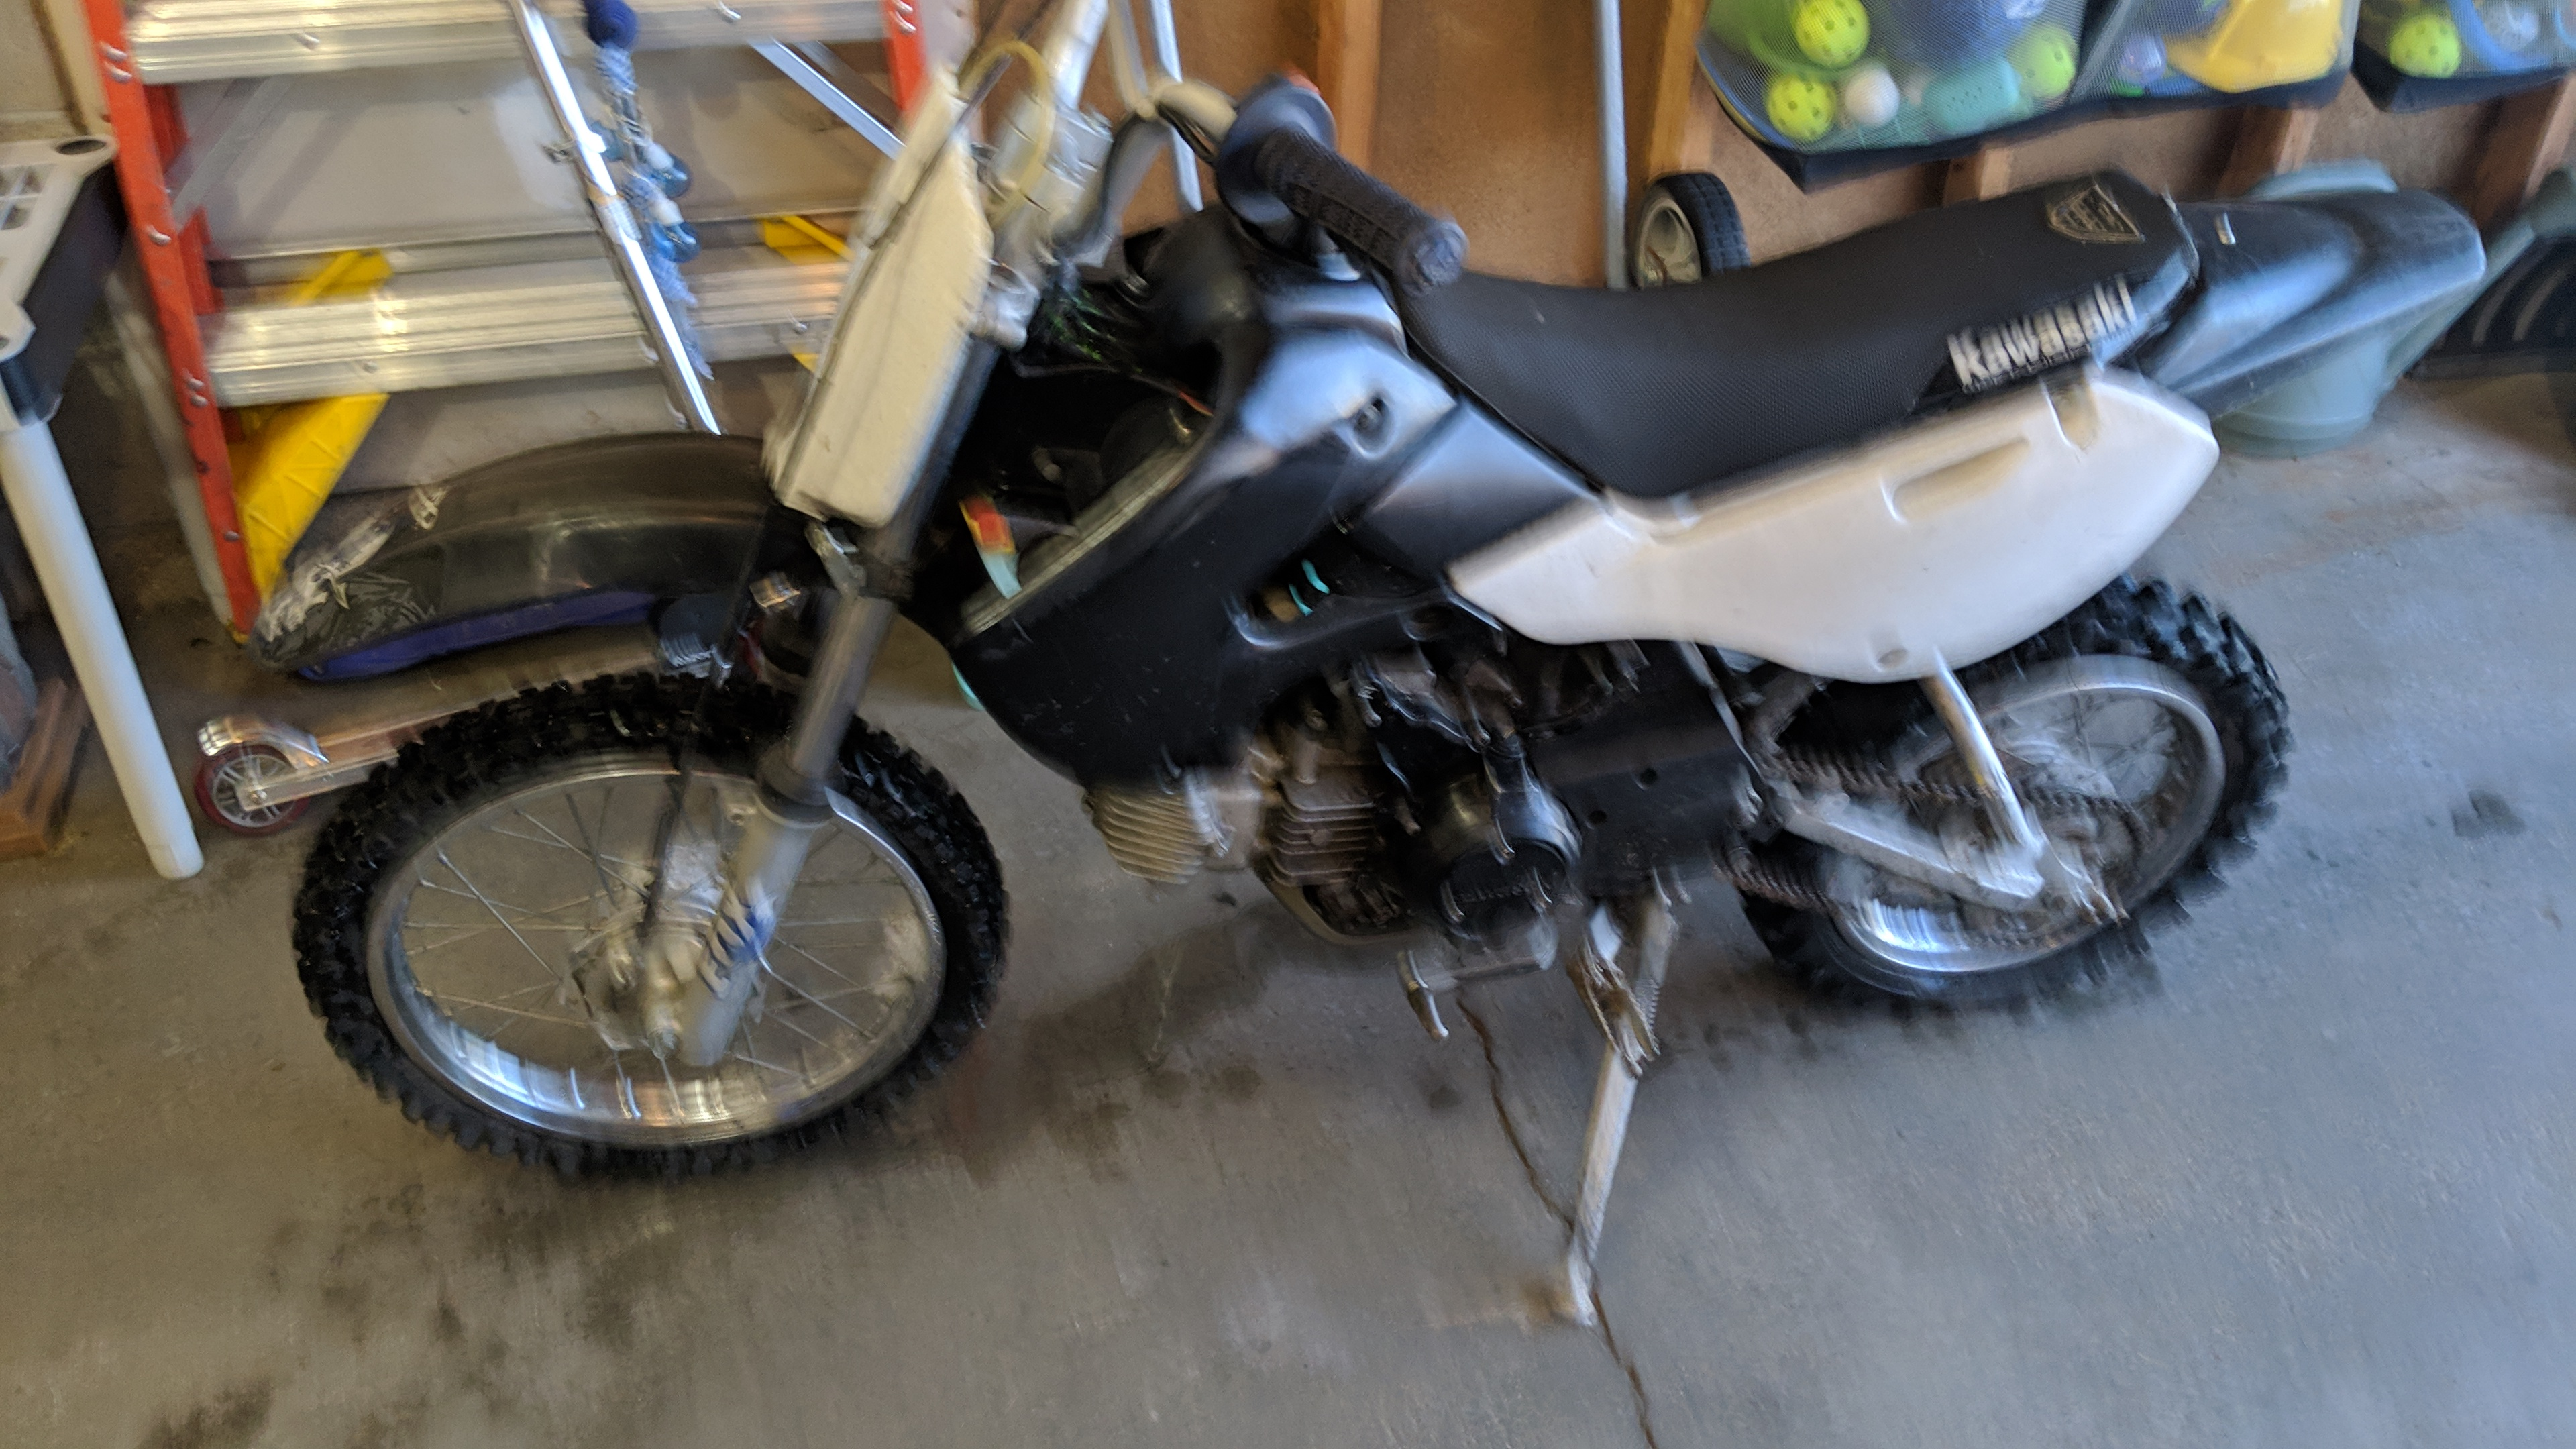 New to forum, rebuilt klx110 recommended suspension upgrades